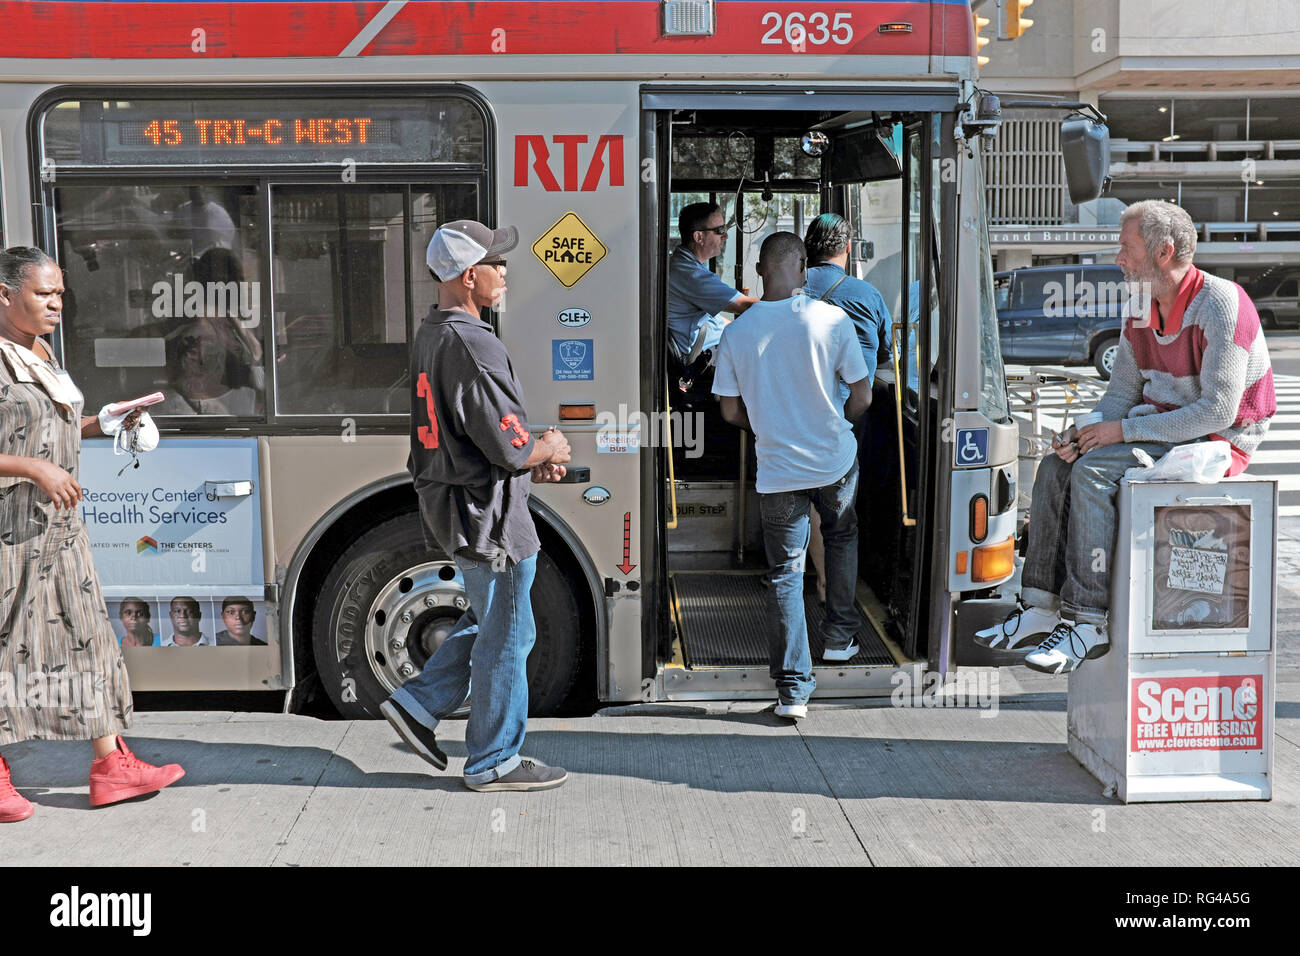 People board a public RTA bus in downtown Cleveland, Ohio, USA during the summer. Stock Photo